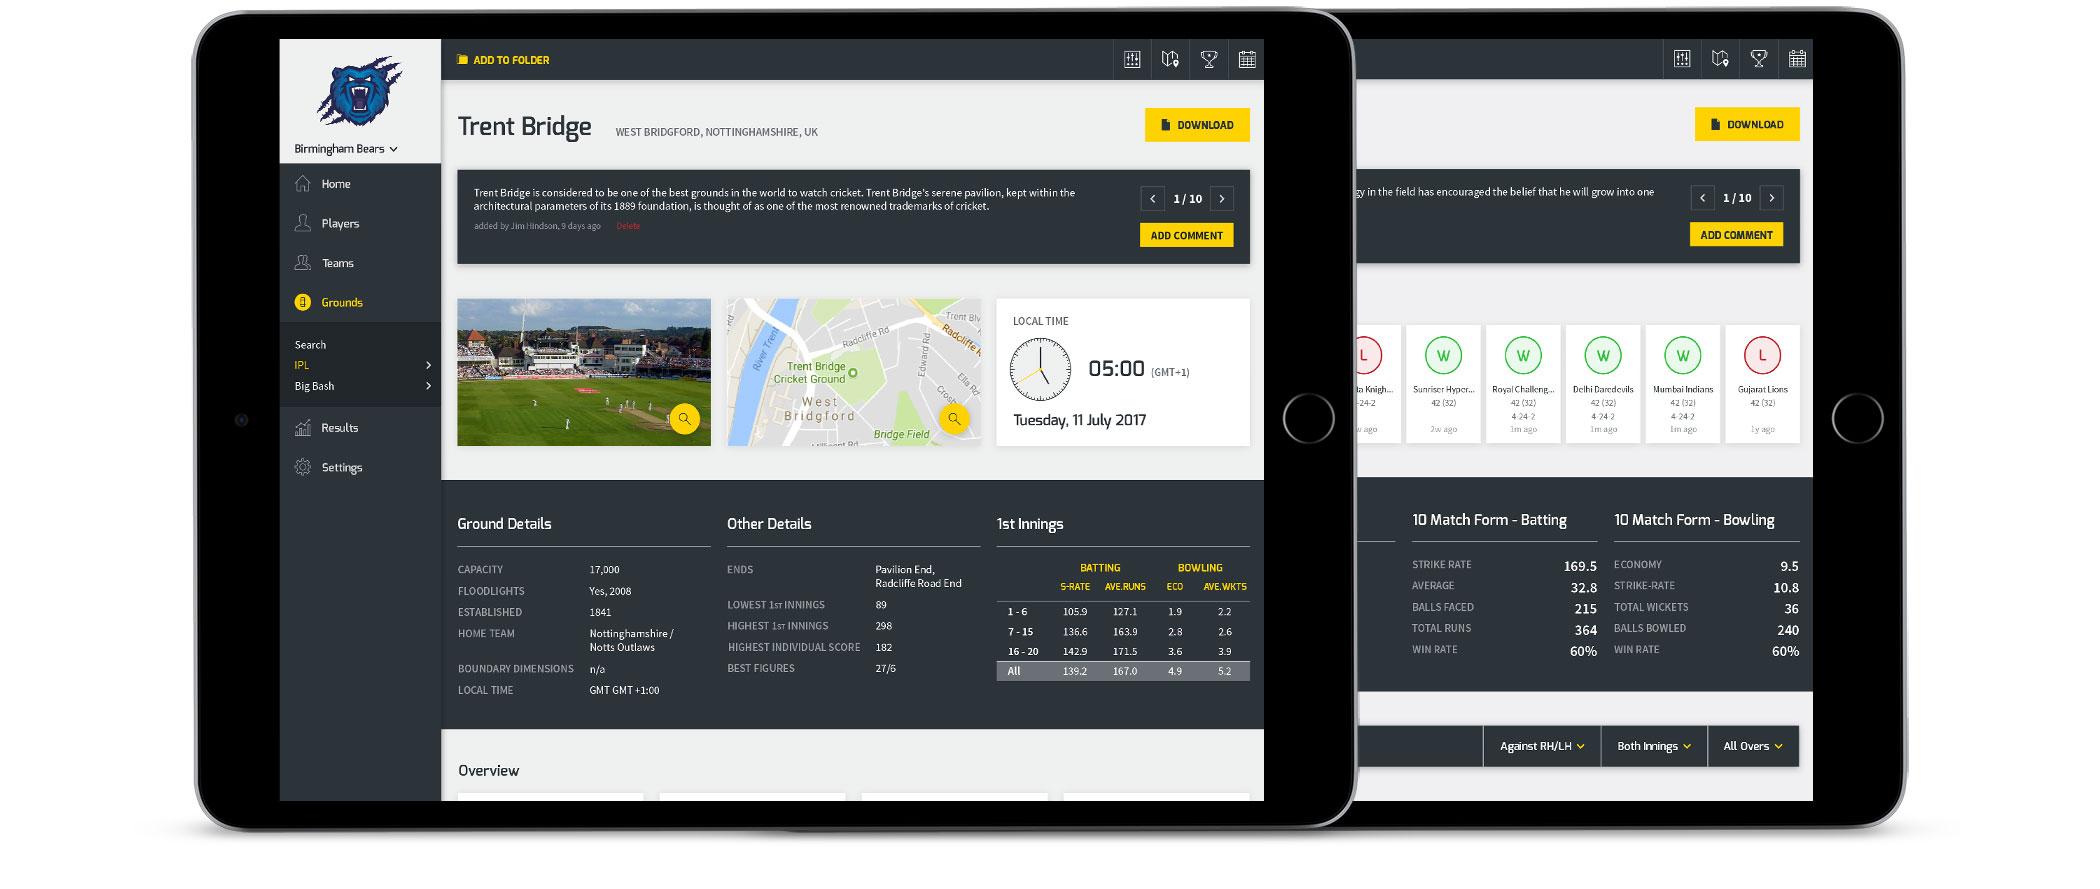 Cricket PIR iPad user interface layouts